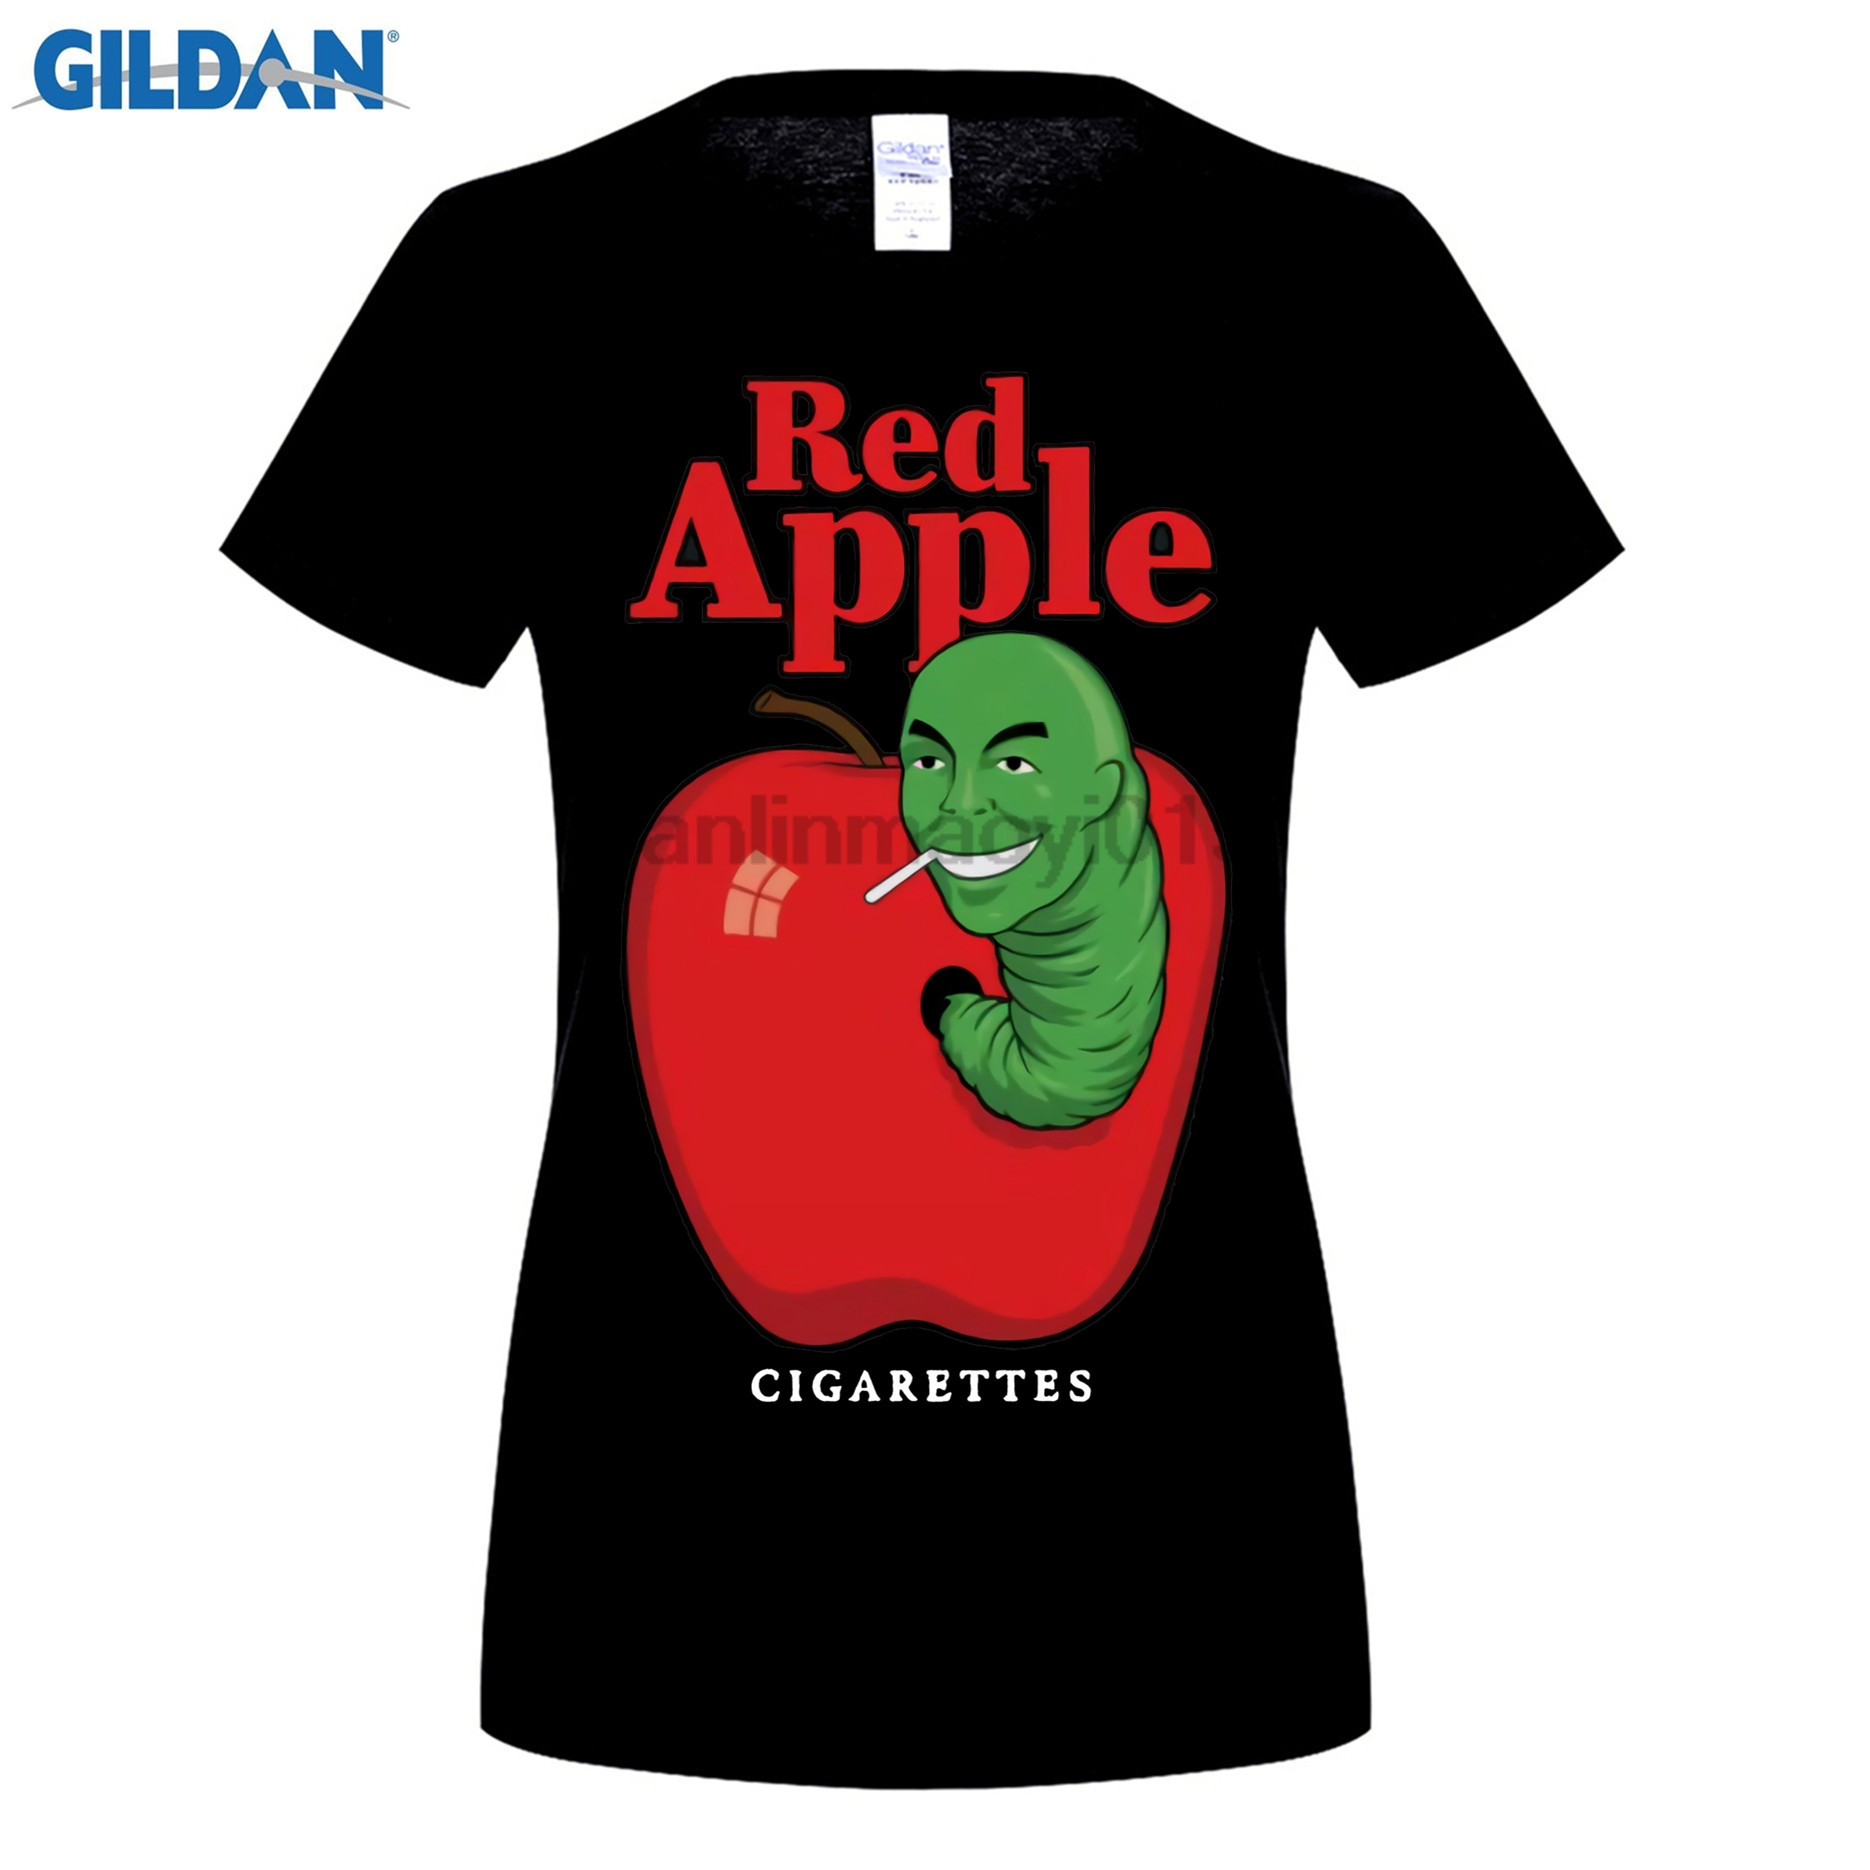 gildan-100-cotton-o-neck-printed-t-shirt-red-cigarettes-t-shirt-font-b-tarantino-b-font-fake-brand-for-women